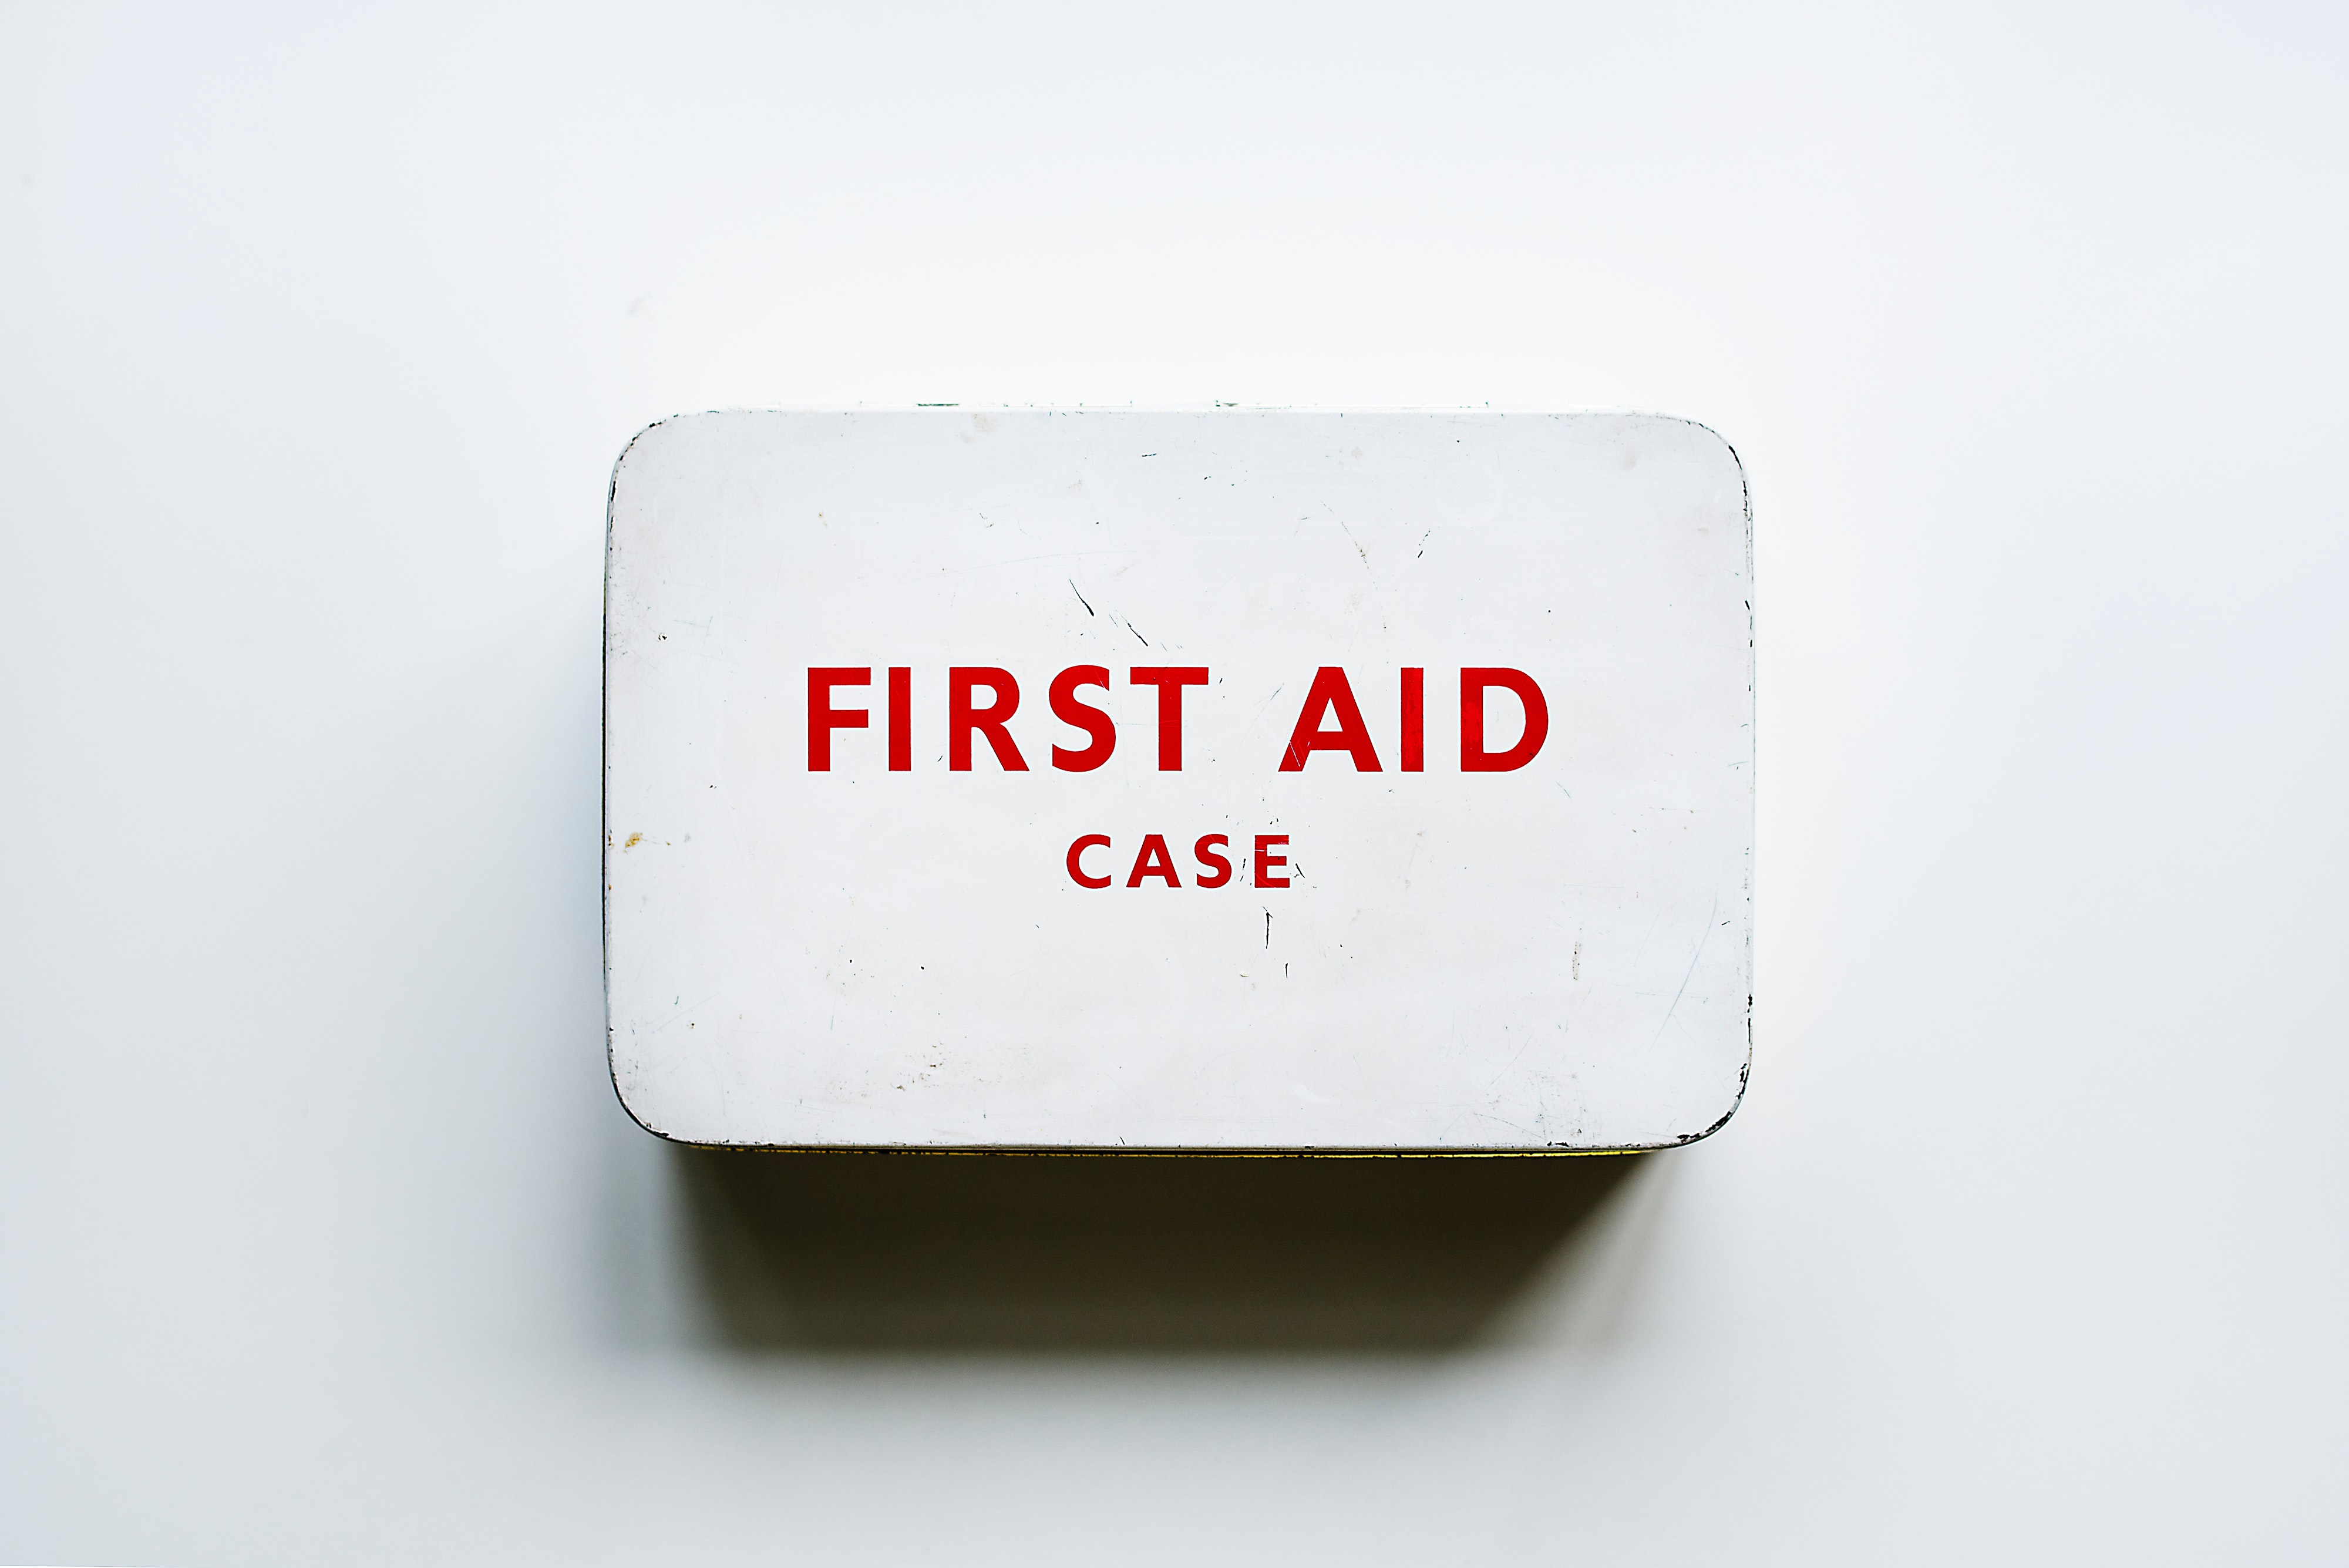 pool-first-aid-box-care-case-1327217